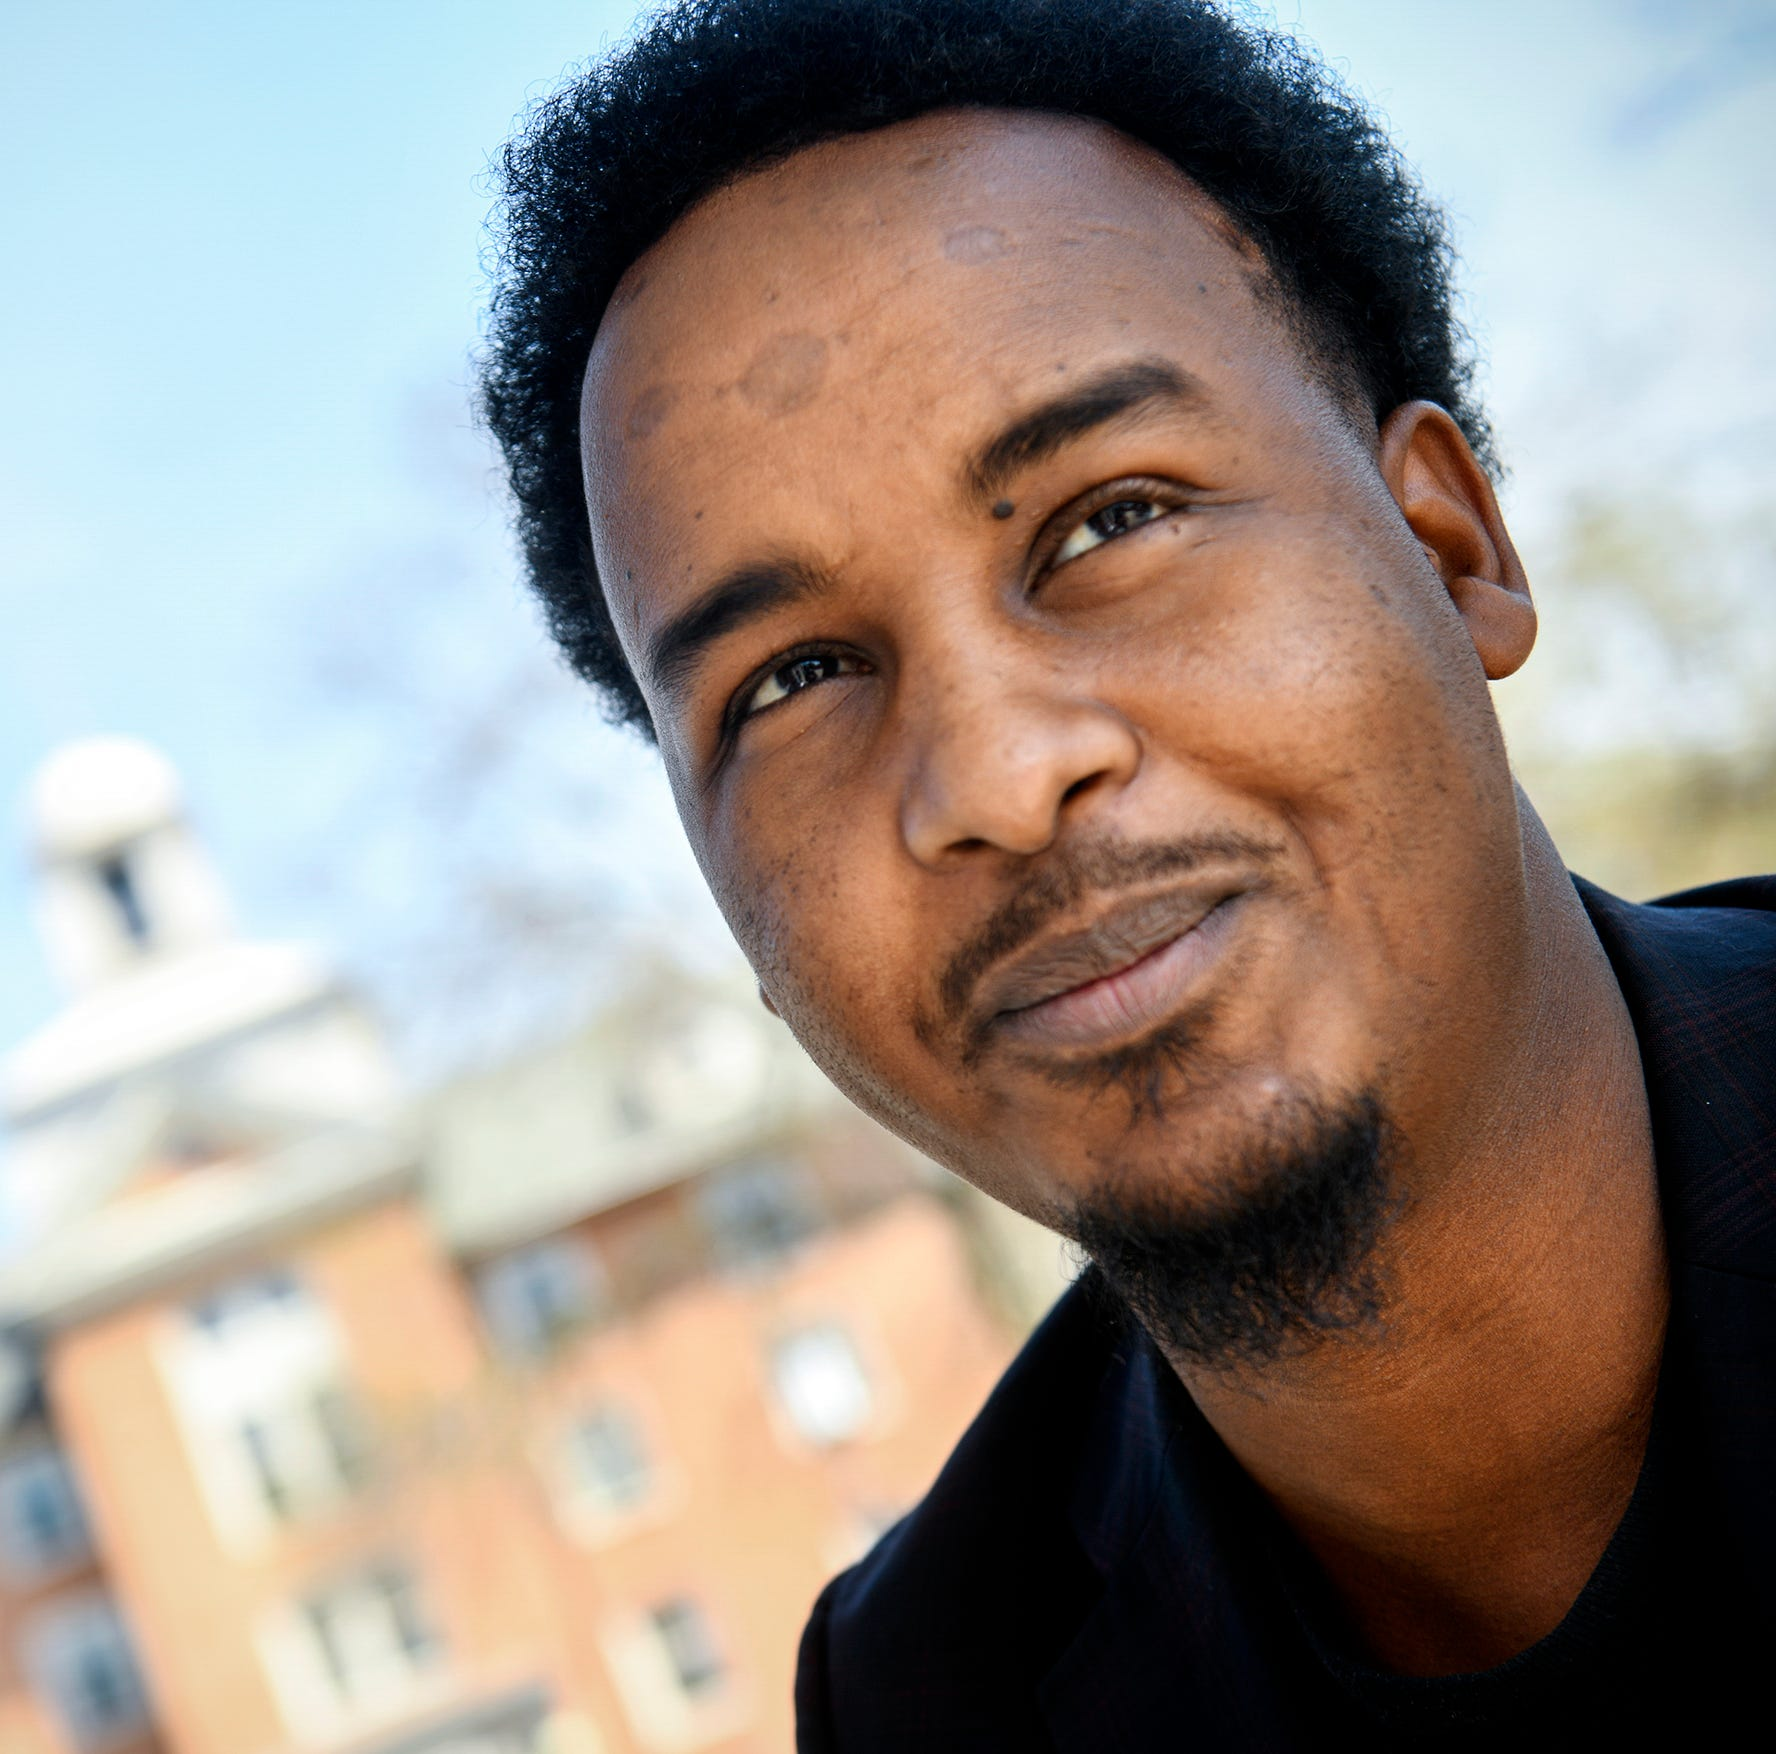 Somali refugee and activist earns St. Cloud State diploma this week